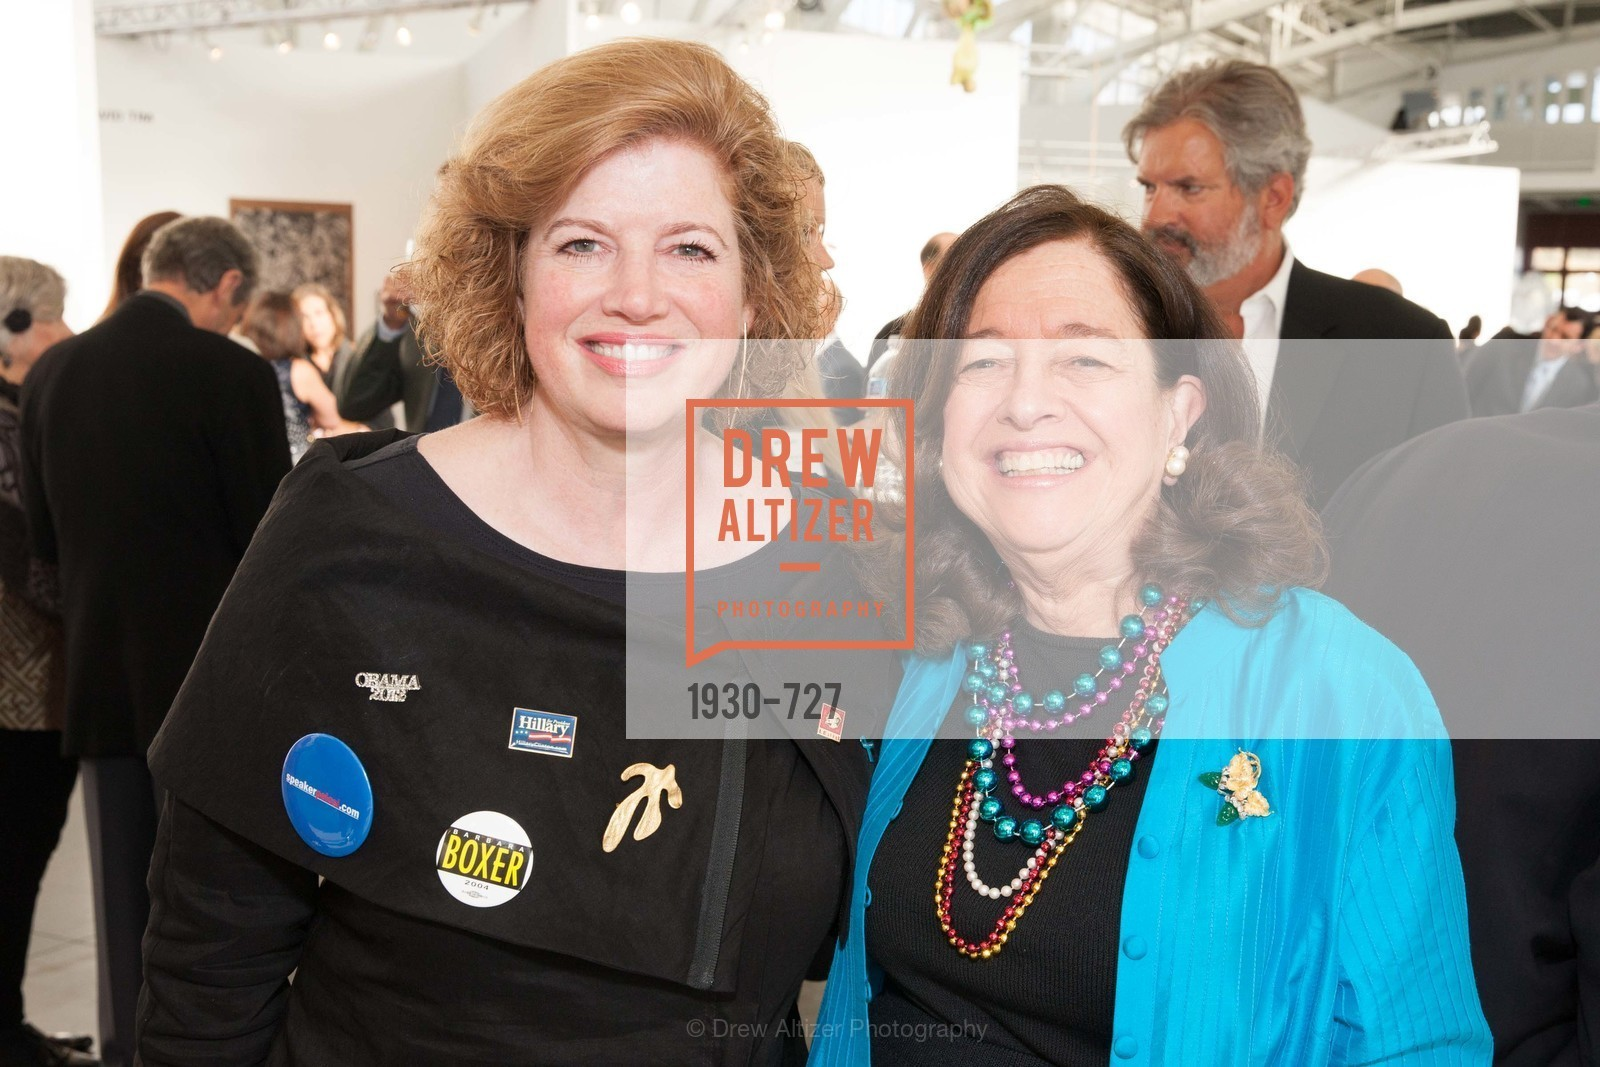 Noelle Leca, Lenny Eccles, SAN FRANCISCO ART INSTITUTE Gala Honoring Art Visionary and Advocate ROSELYNE CHROMAN SWIG, US, May 14th, 2015,Drew Altizer, Drew Altizer Photography, full-service agency, private events, San Francisco photographer, photographer california